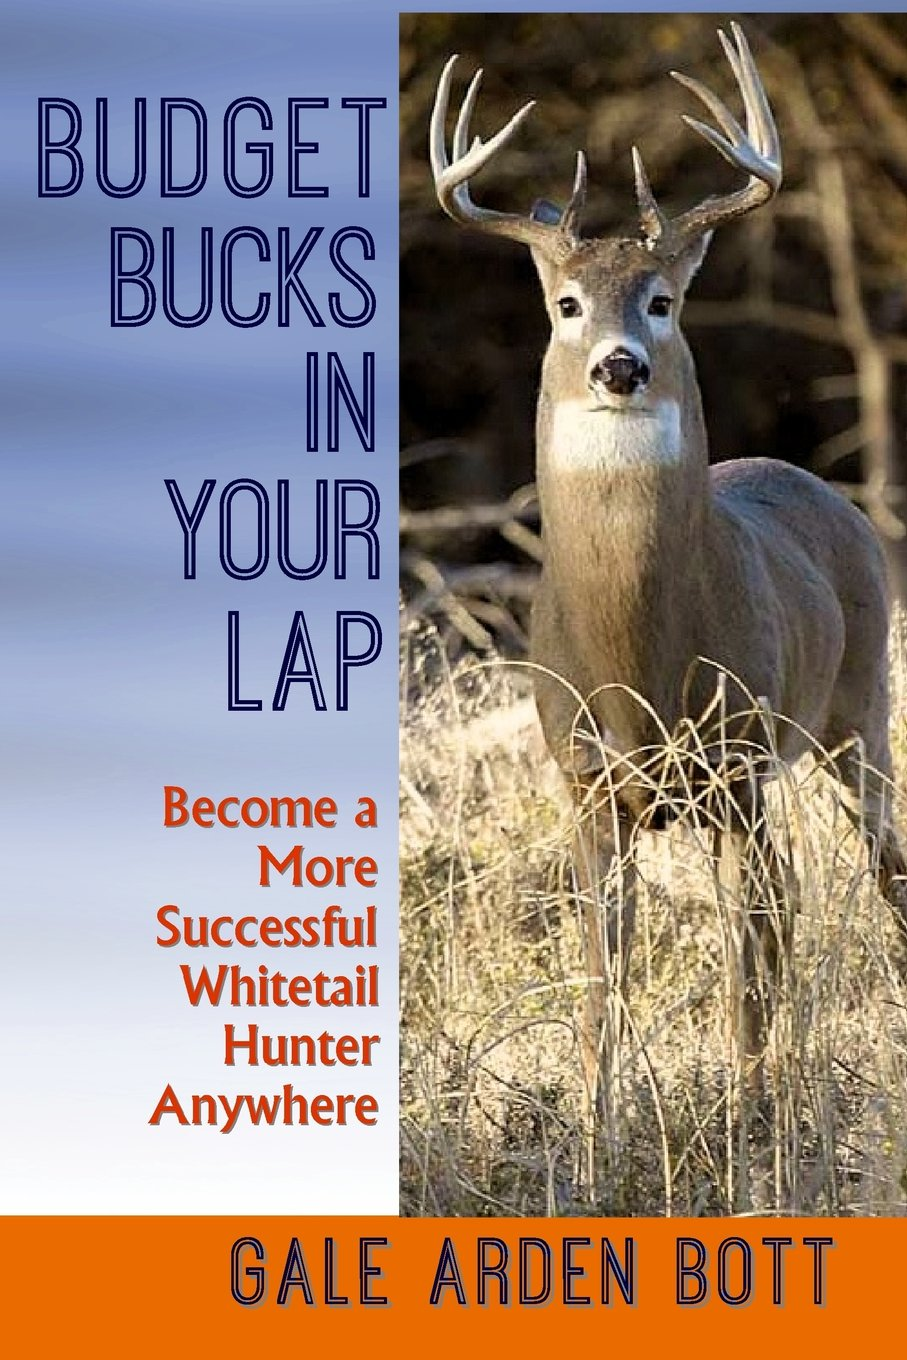 Budget Bucks in Your Lap Gale Arden Bott -